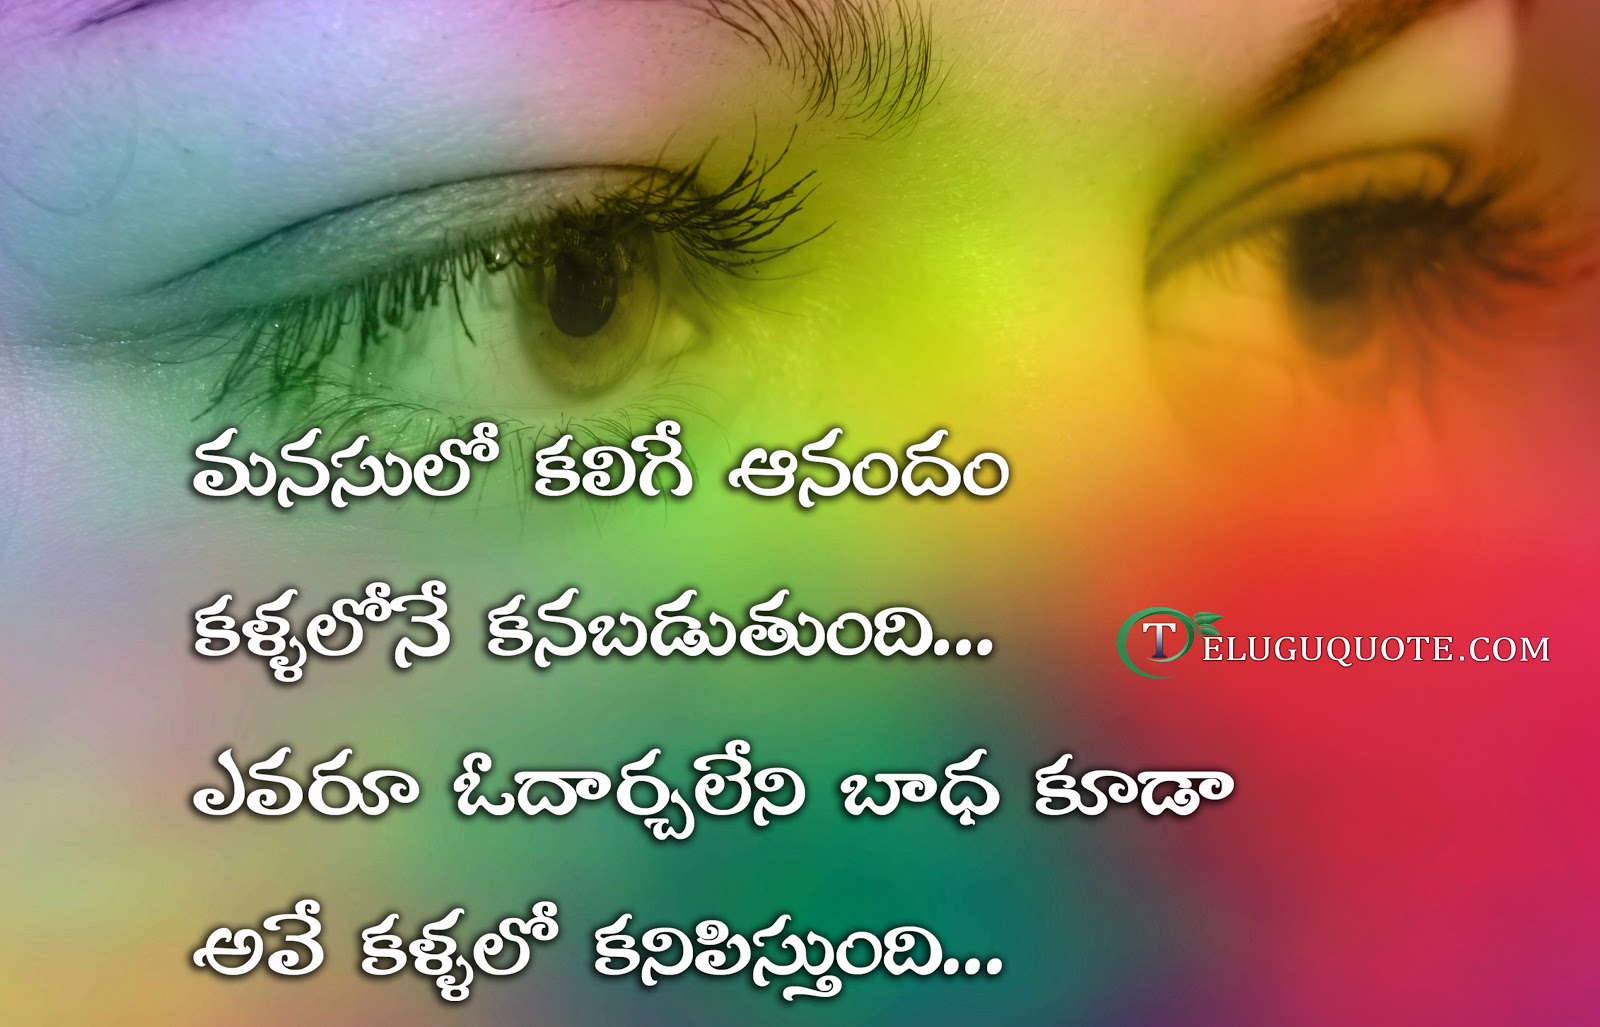 Telugu Best Quotations Images